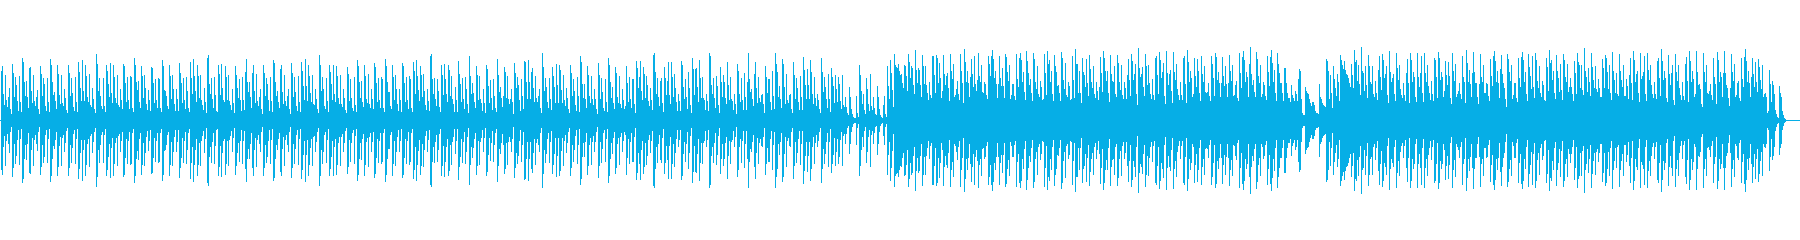 Japanese-style percussion that enhances your mood's reproduced waveform